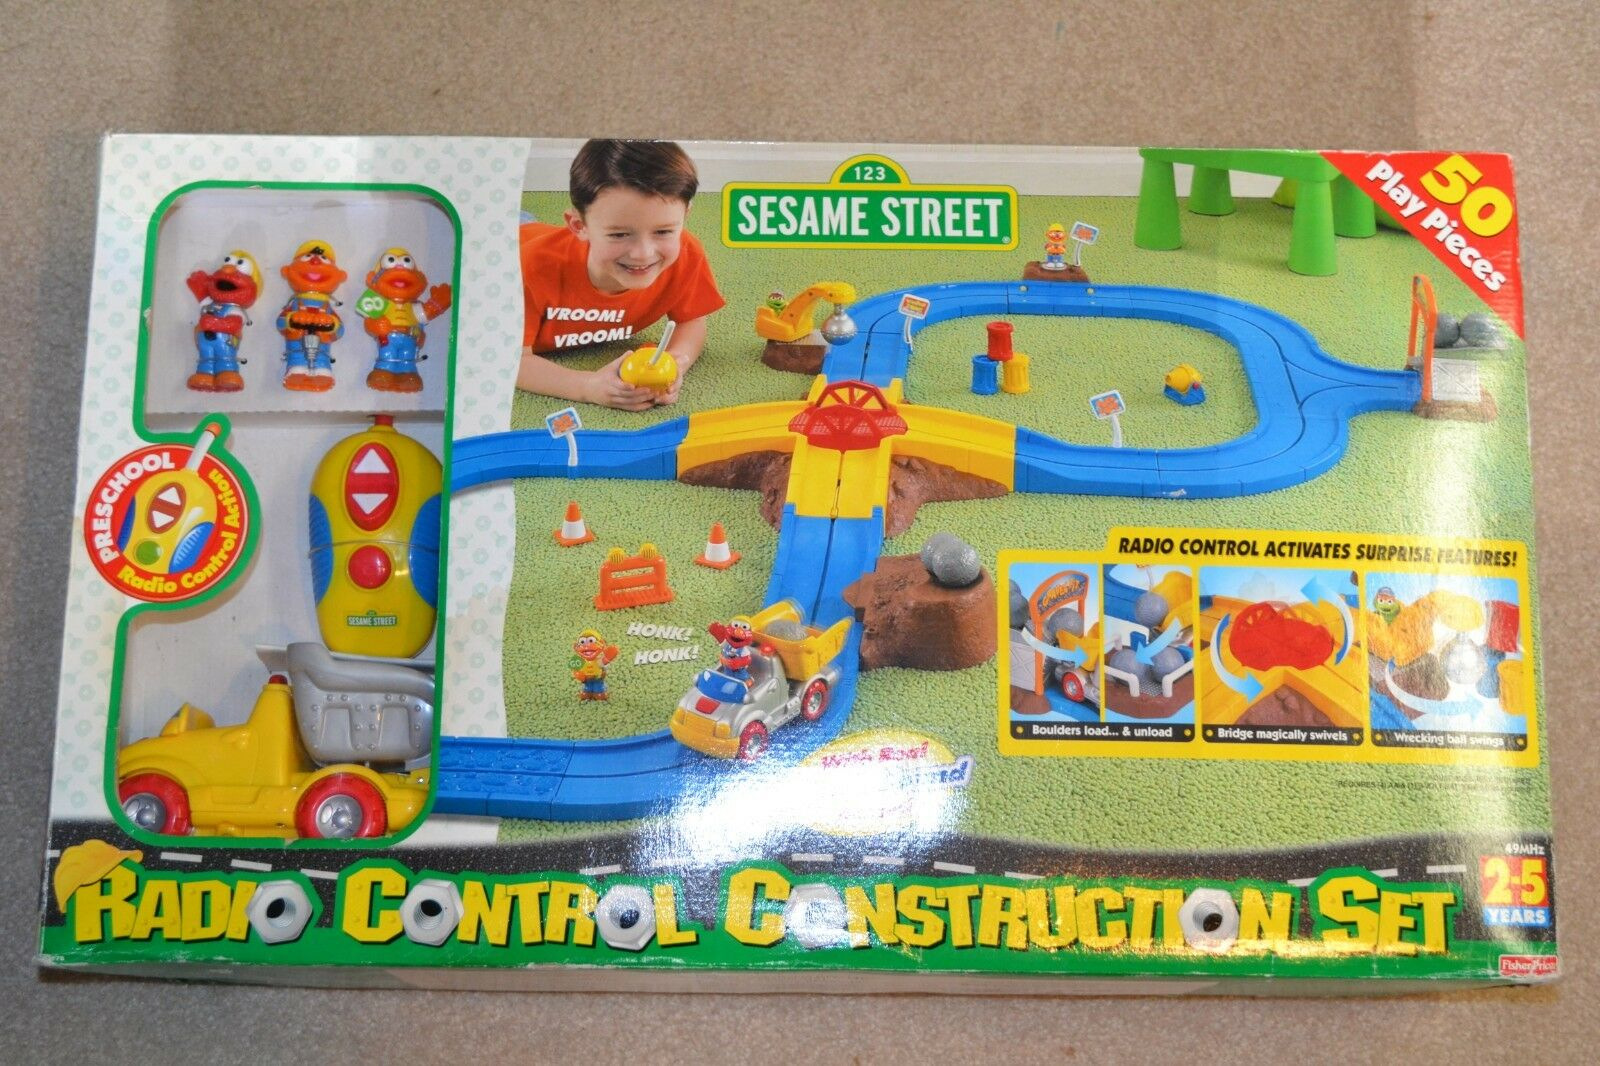 2000 FISHER PRICE SESAME STREET conjunto Radio Control Sellado Gratis Construction enviar